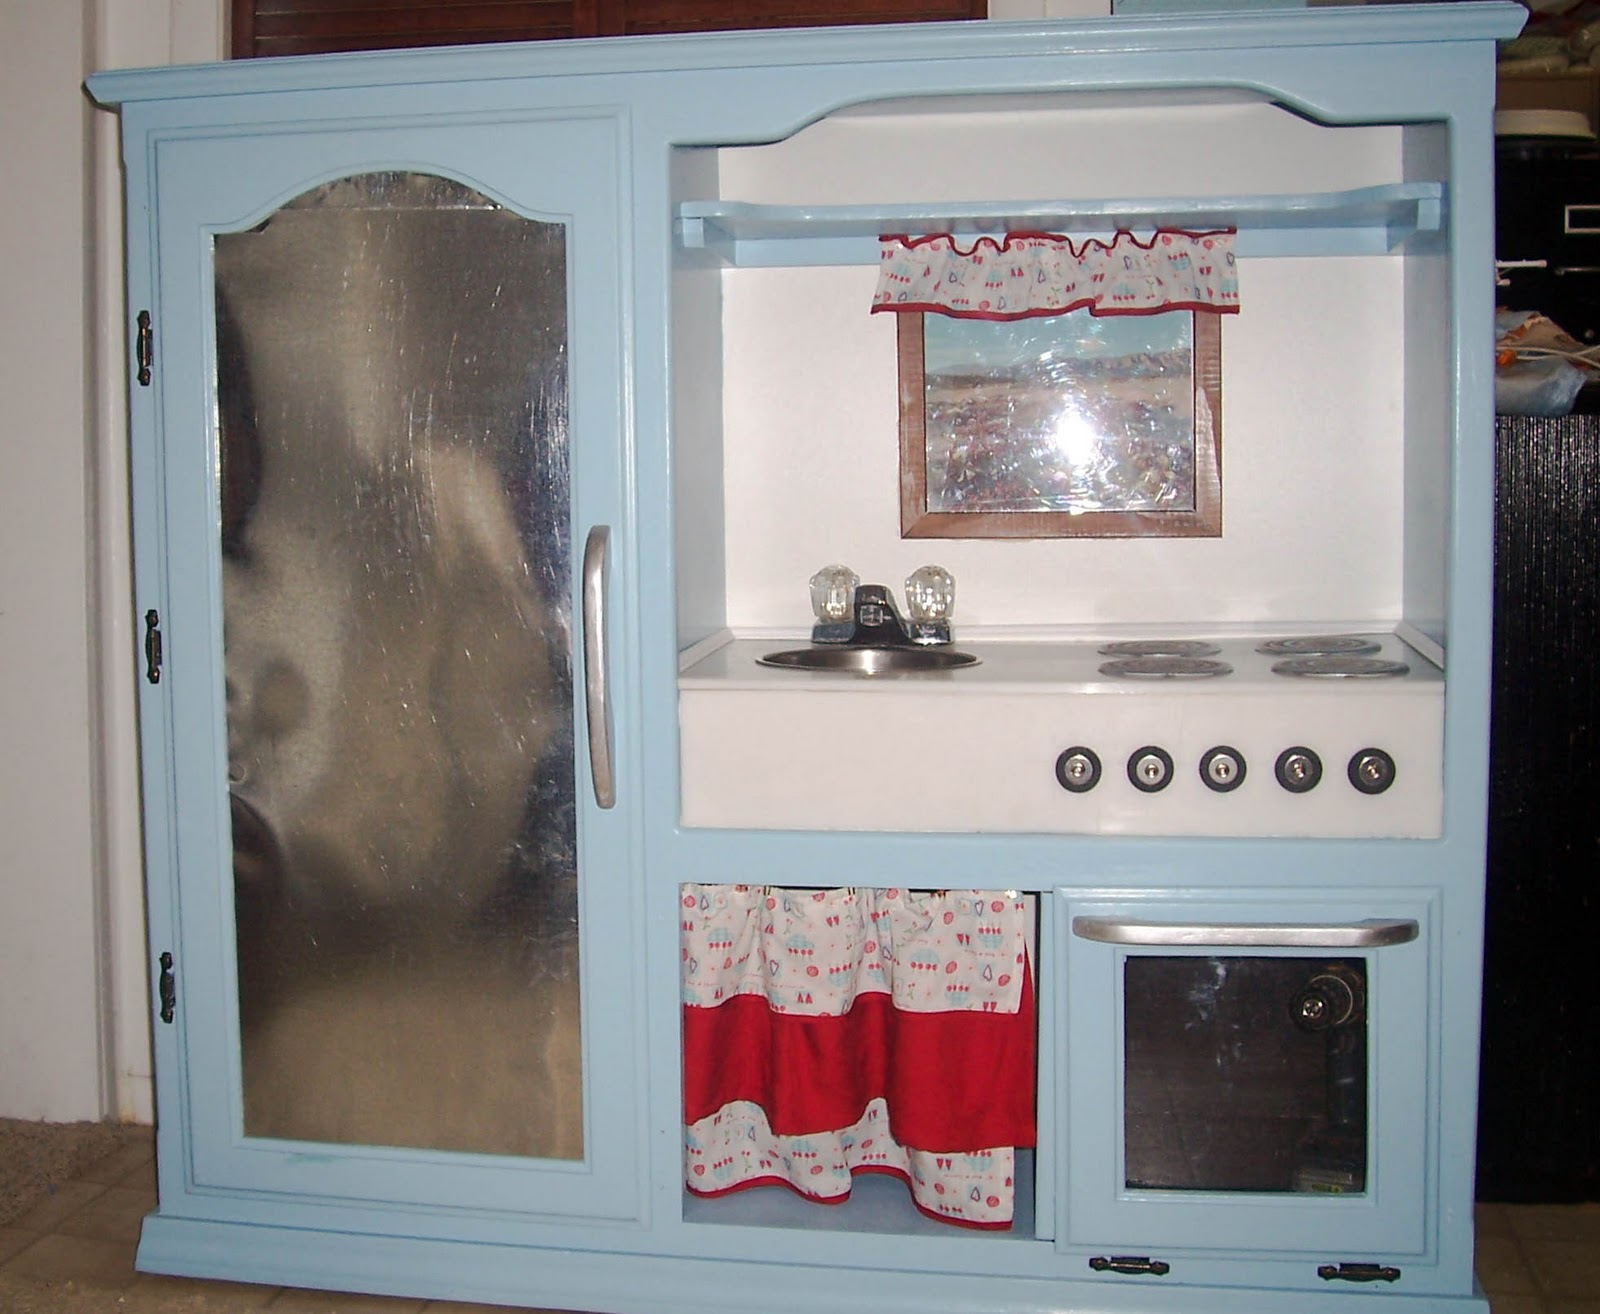 Homemade Play Kitchen Similiar Homemade Kitchen From Entertainment Center Keywords